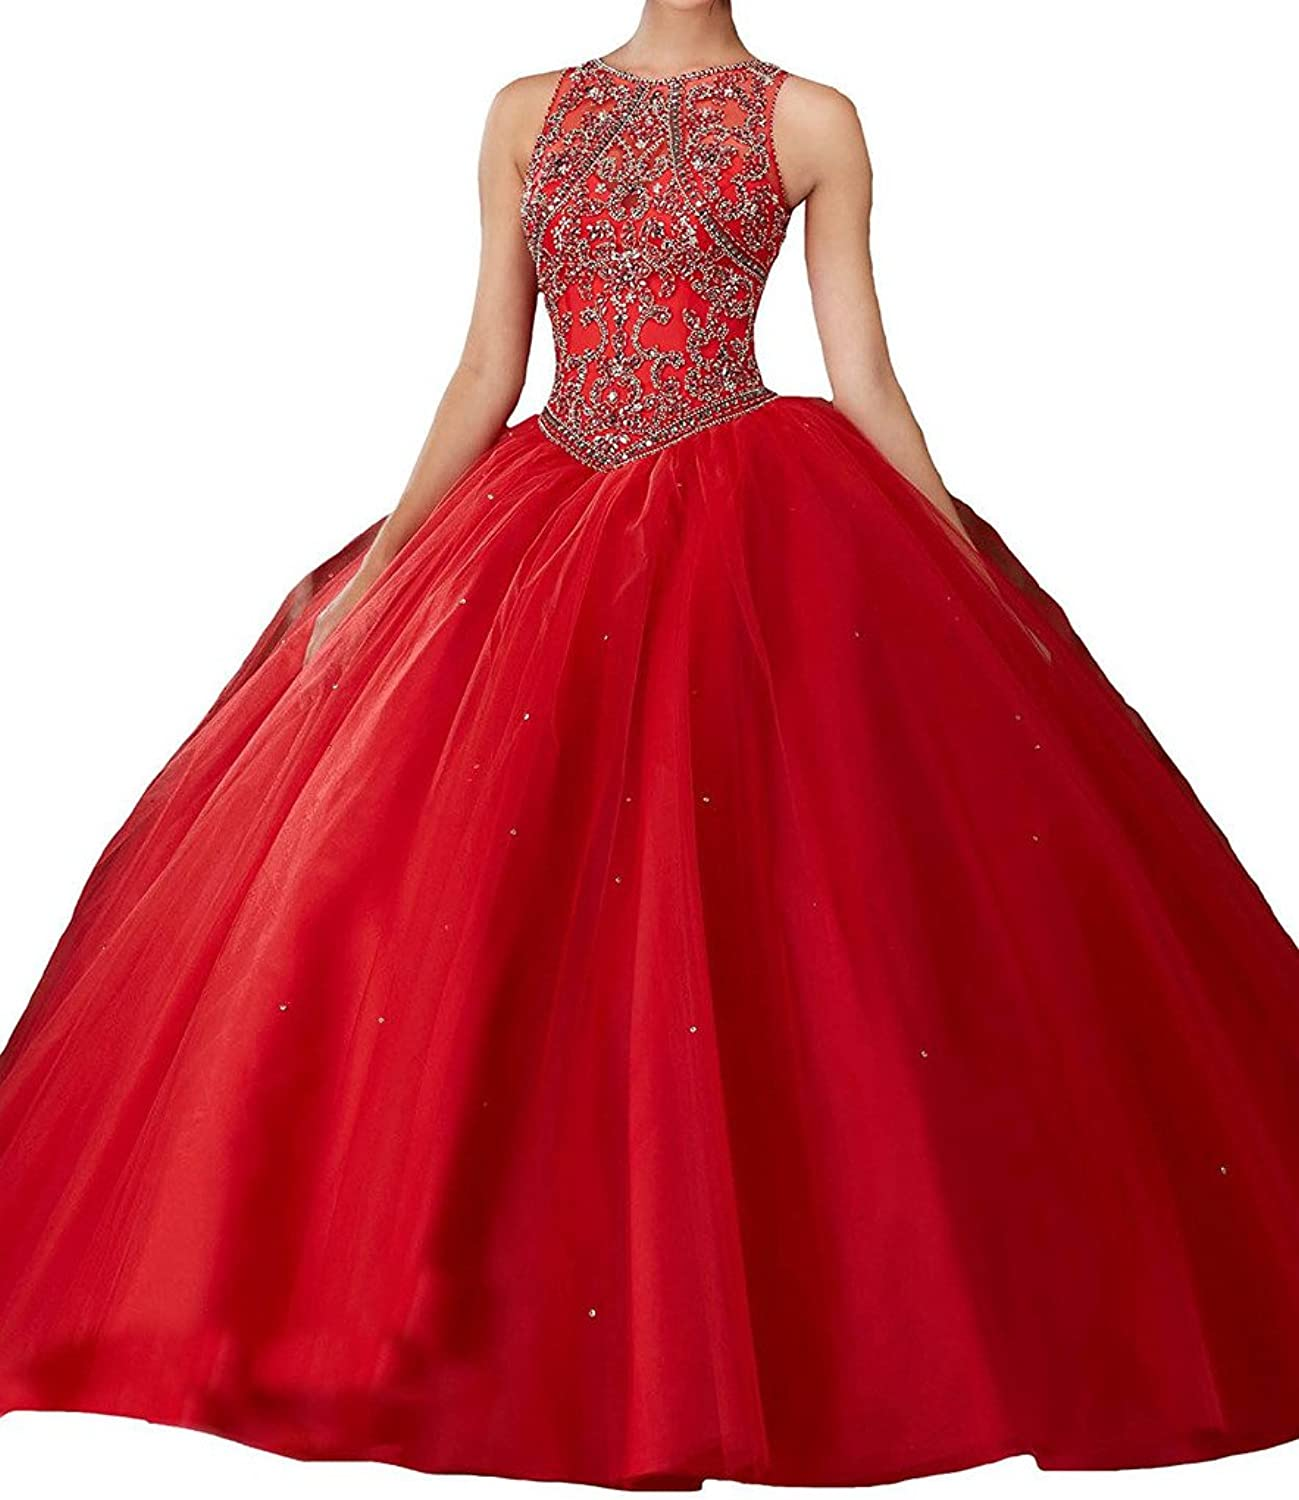 Engerla Women's Sheer Scoop Neck Crystal Hollow Back Quinceanera Prom Ball Gown